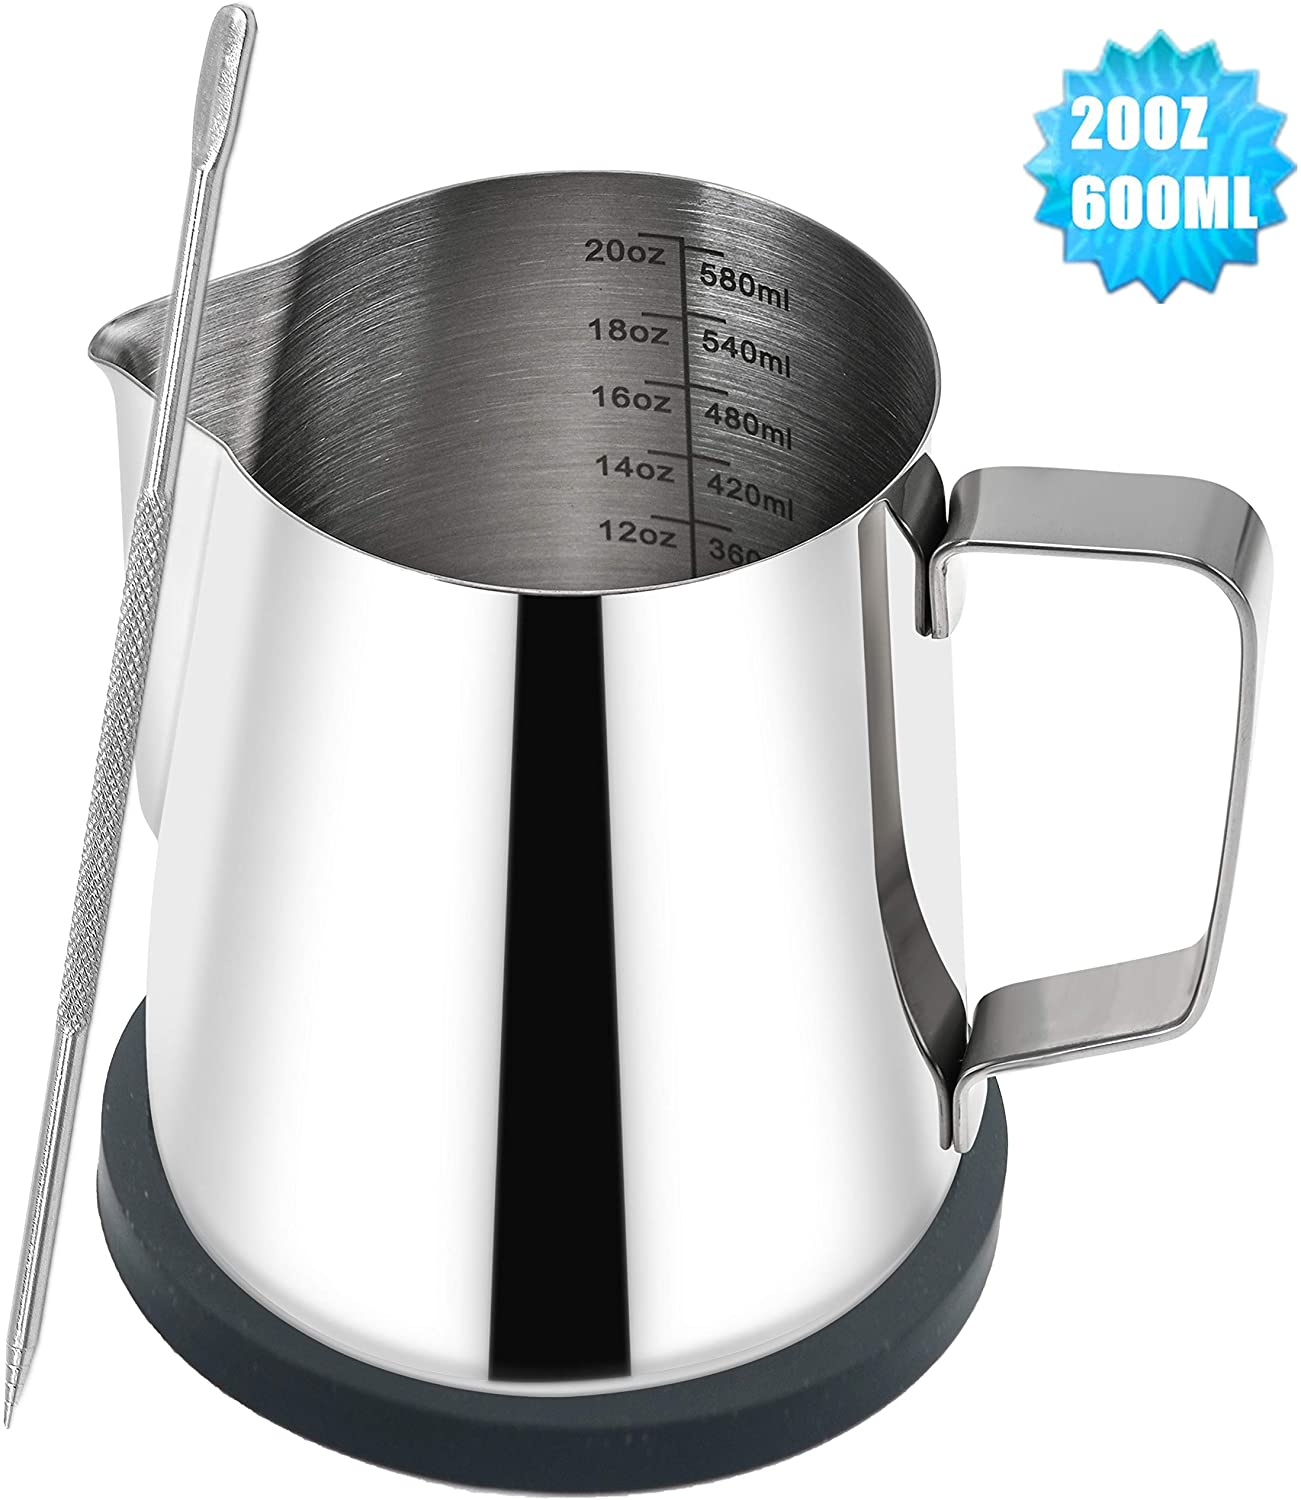 Espresso Steaming Pitcher 20OZ Stainless Steel Milk Frothing Cup -for Espresso Machines, Latte Art, Milk Coffee, Cappuccino 20oz/600ml